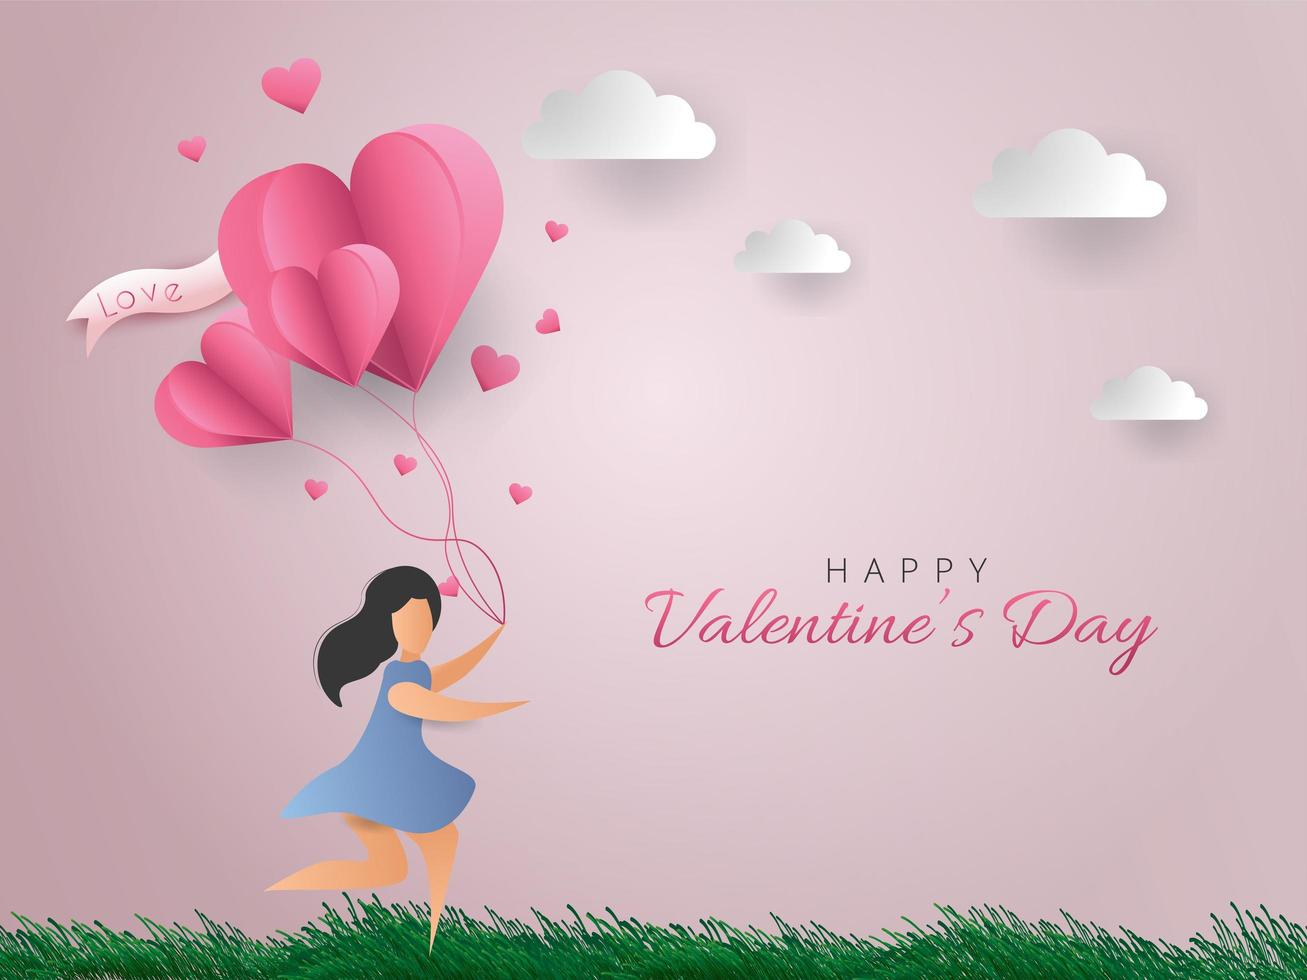 Happy Valentine's day card. Woman running with heart balloons.